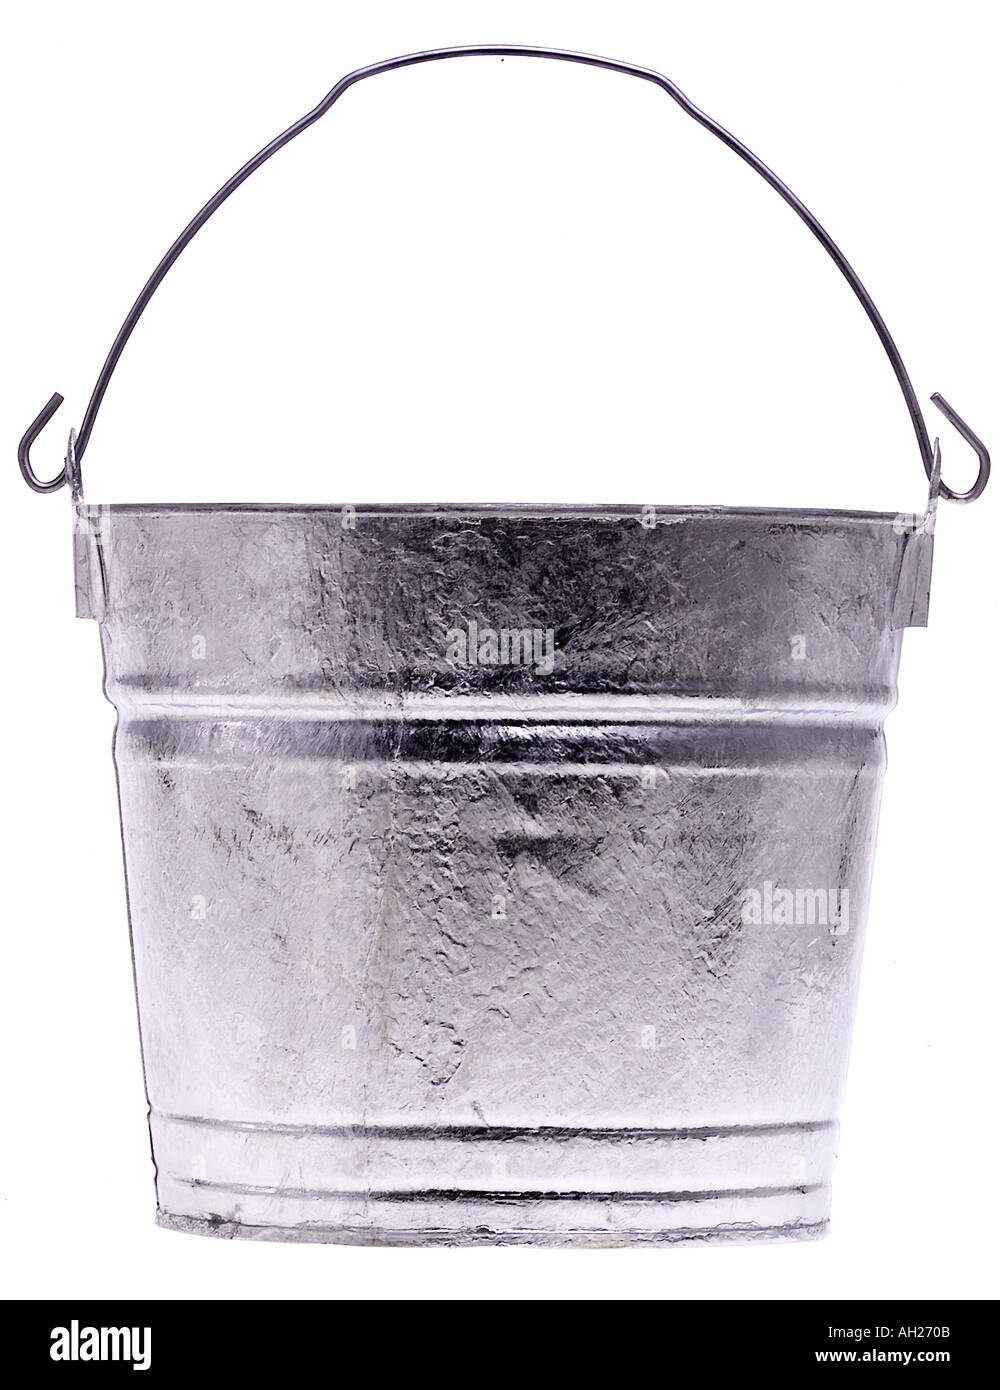 empty grey metal tin pail bucket silhouetted on white background - Stock Image